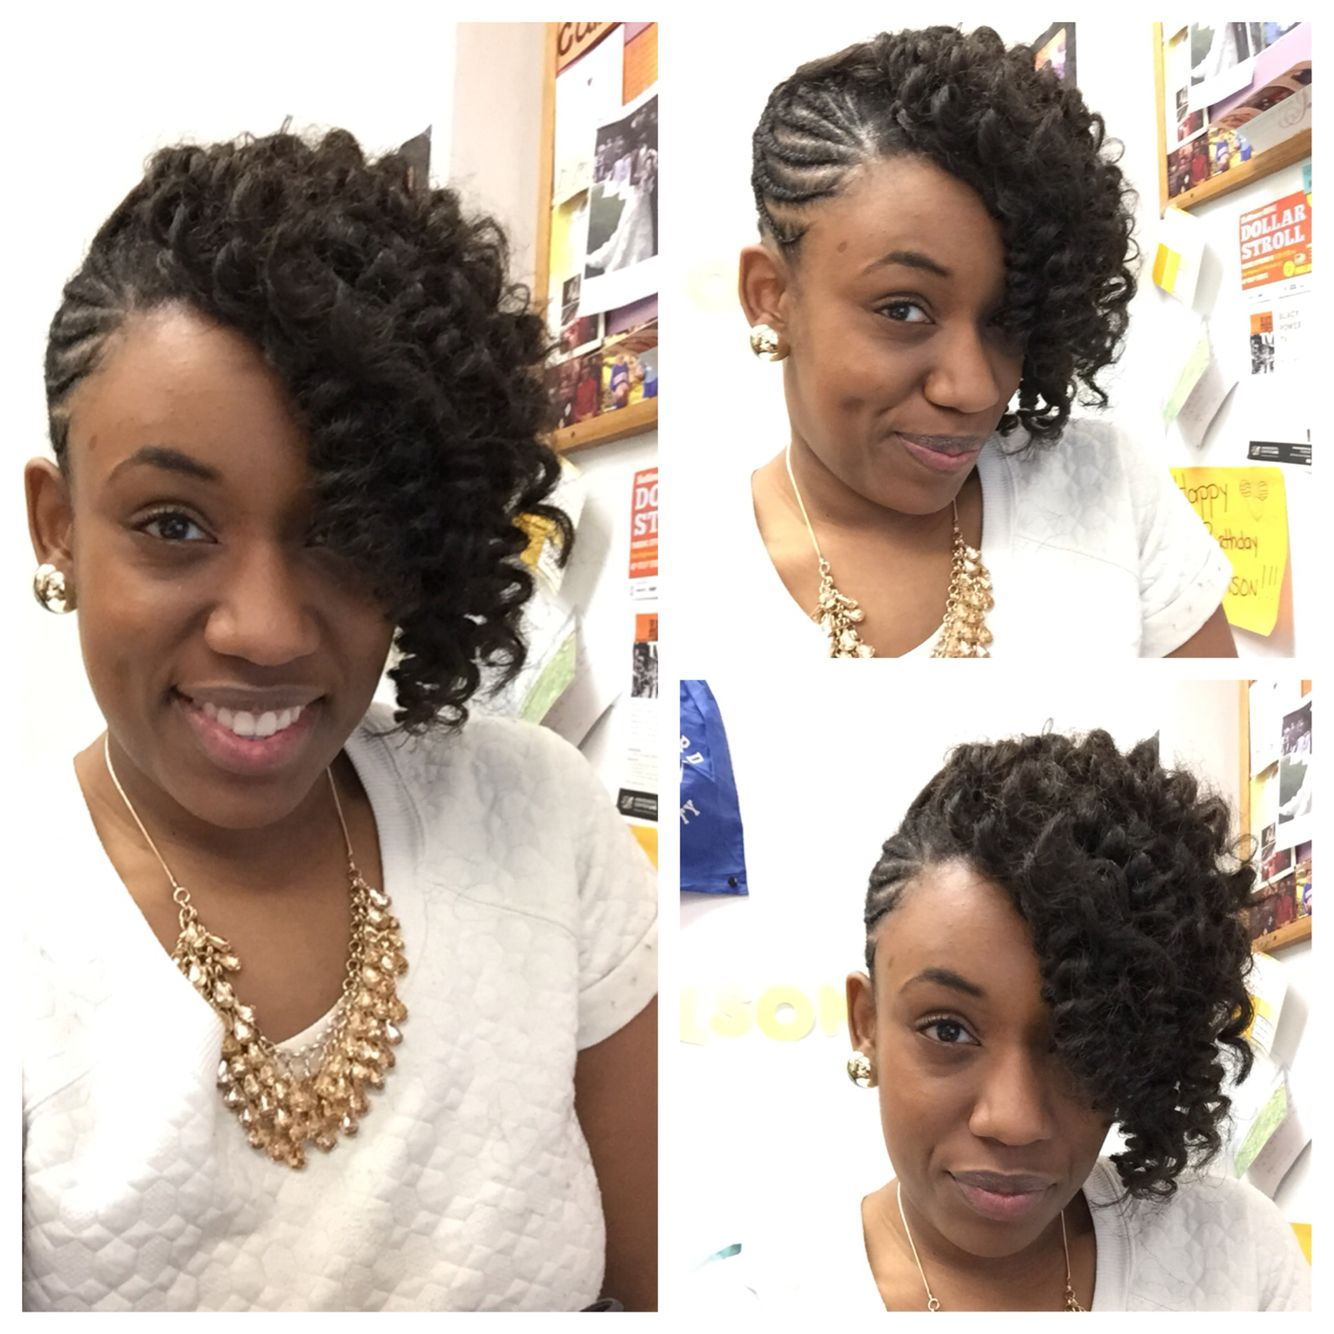 Braided updo with kanekalon hair crocheted and curled to create the